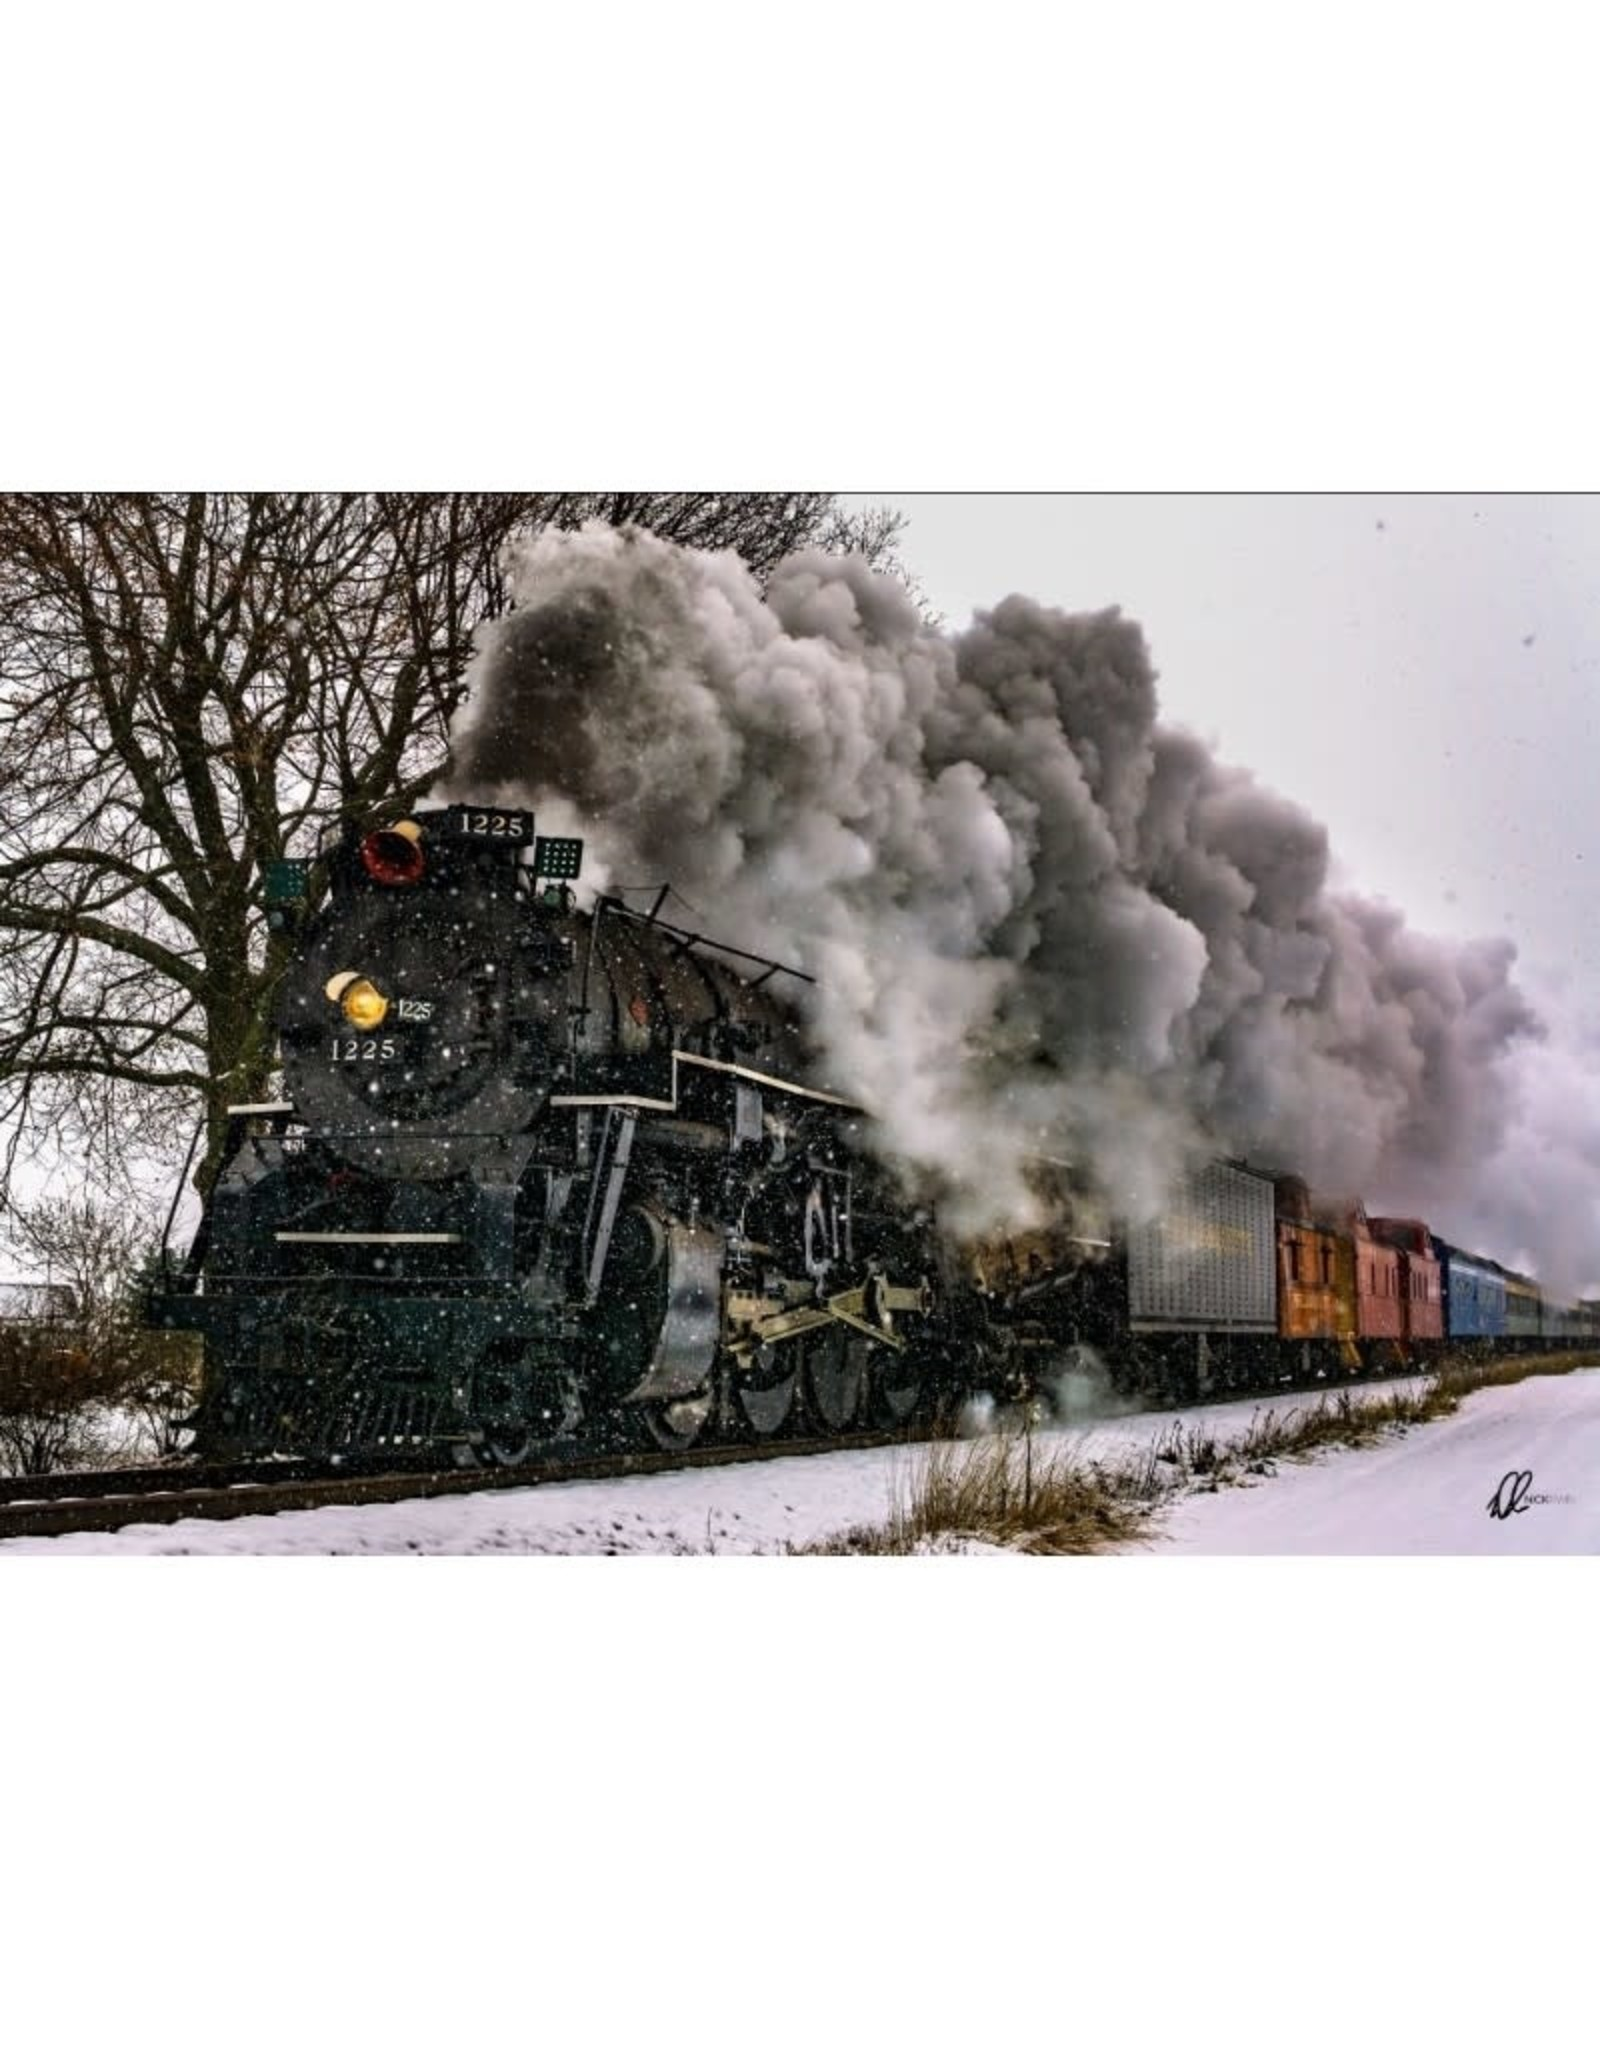 Nick Irwin Images The North Pole Express